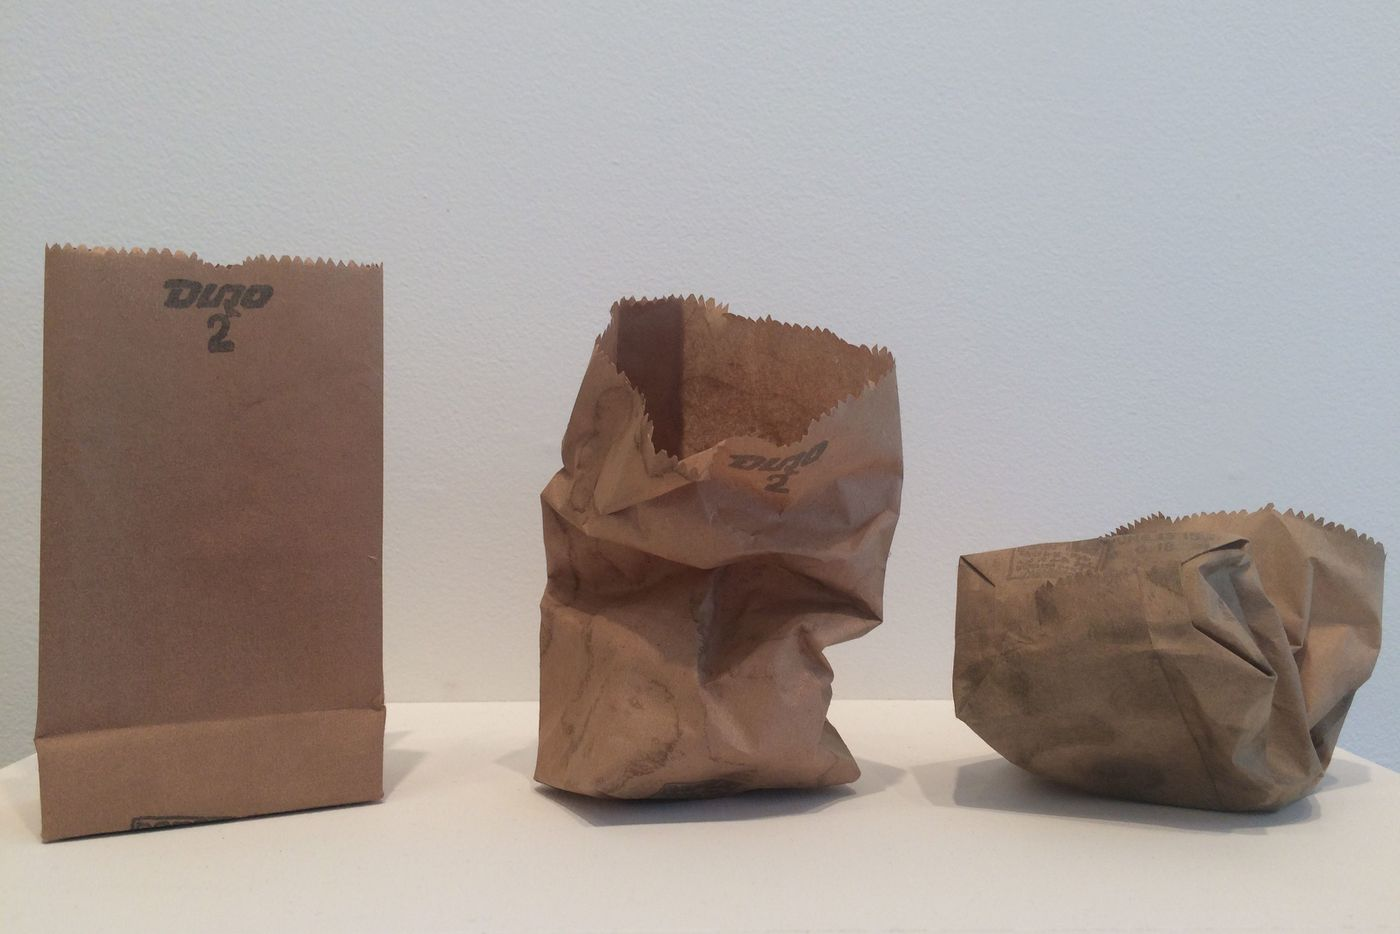 In Philly galleries now: Bergstrom bags, a subtle modern master, Fleisher/Ollman's 'Party'